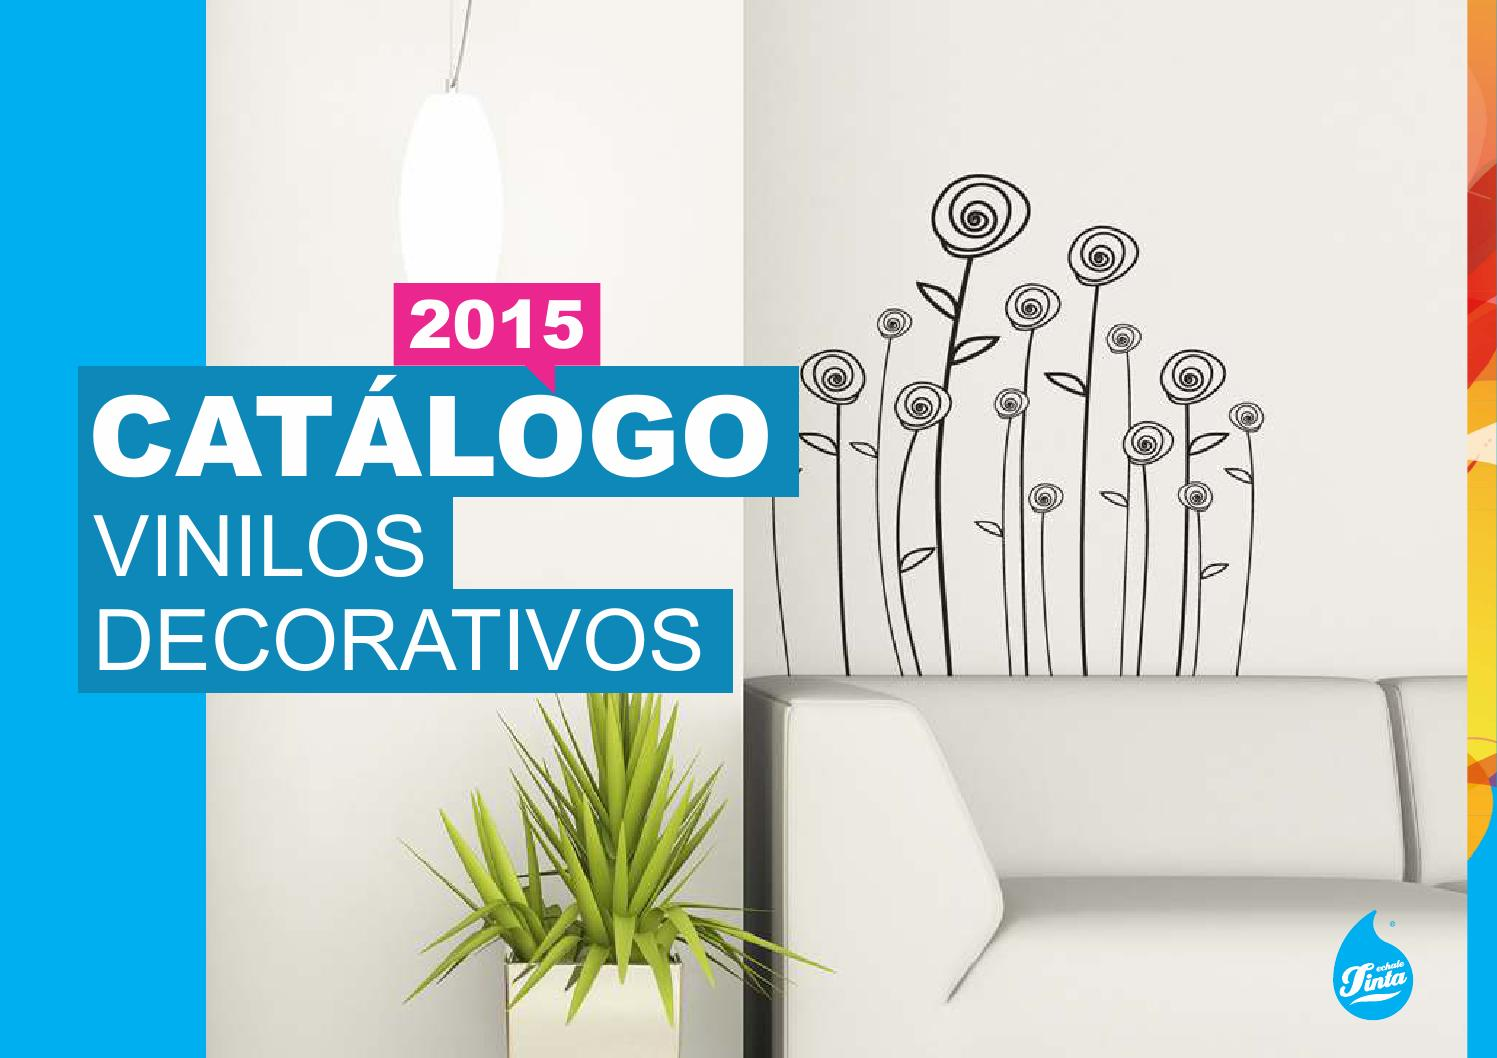 Catalogo De Vinilos Decorativos Catalogo Vinilos Decorativos 2015 By Echale Tinta Issuu